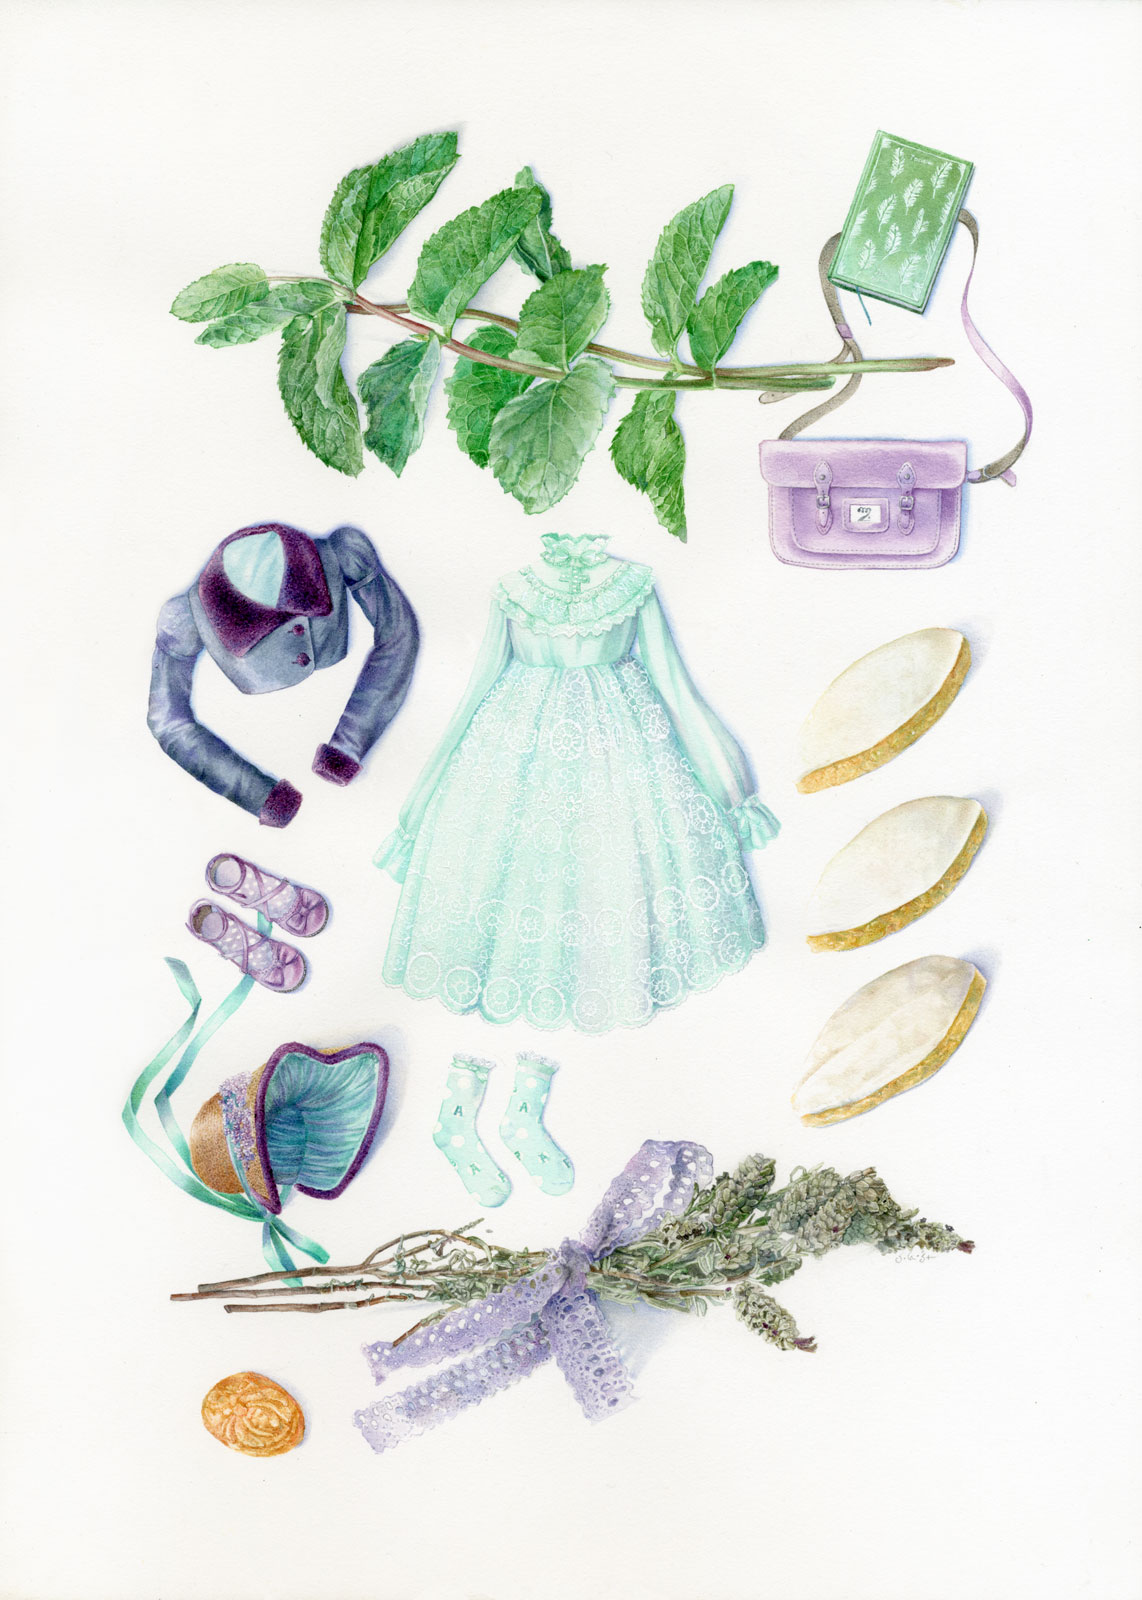 Technical illustration of a herbarium made up with fashionable lolita clothing from Angelic Pretty mixed with antique accessories, and a provencal theme (calissons, lavender, mint) with additional references to England and Jane Austen.